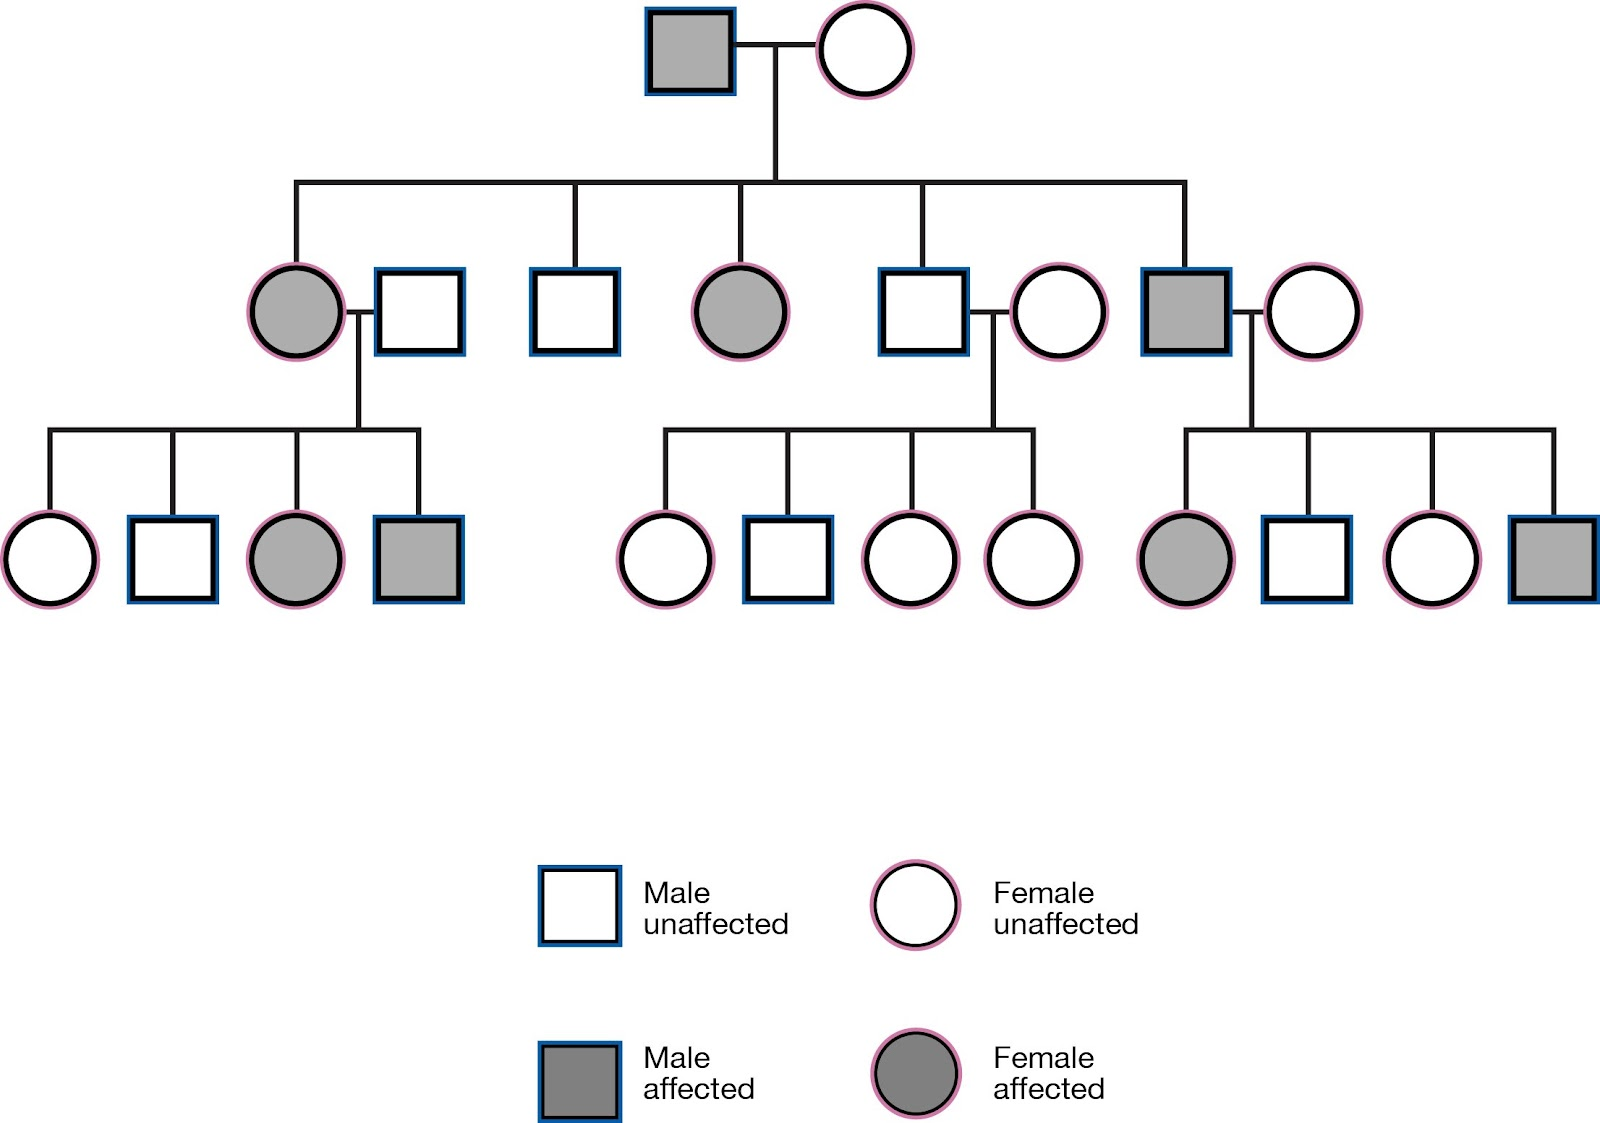 Heredity it is used determine if the pedigree chart shows an autosomal or x linked disease if it is a 5050 ratio between men and women the disorder is autosomal pooptronica Gallery